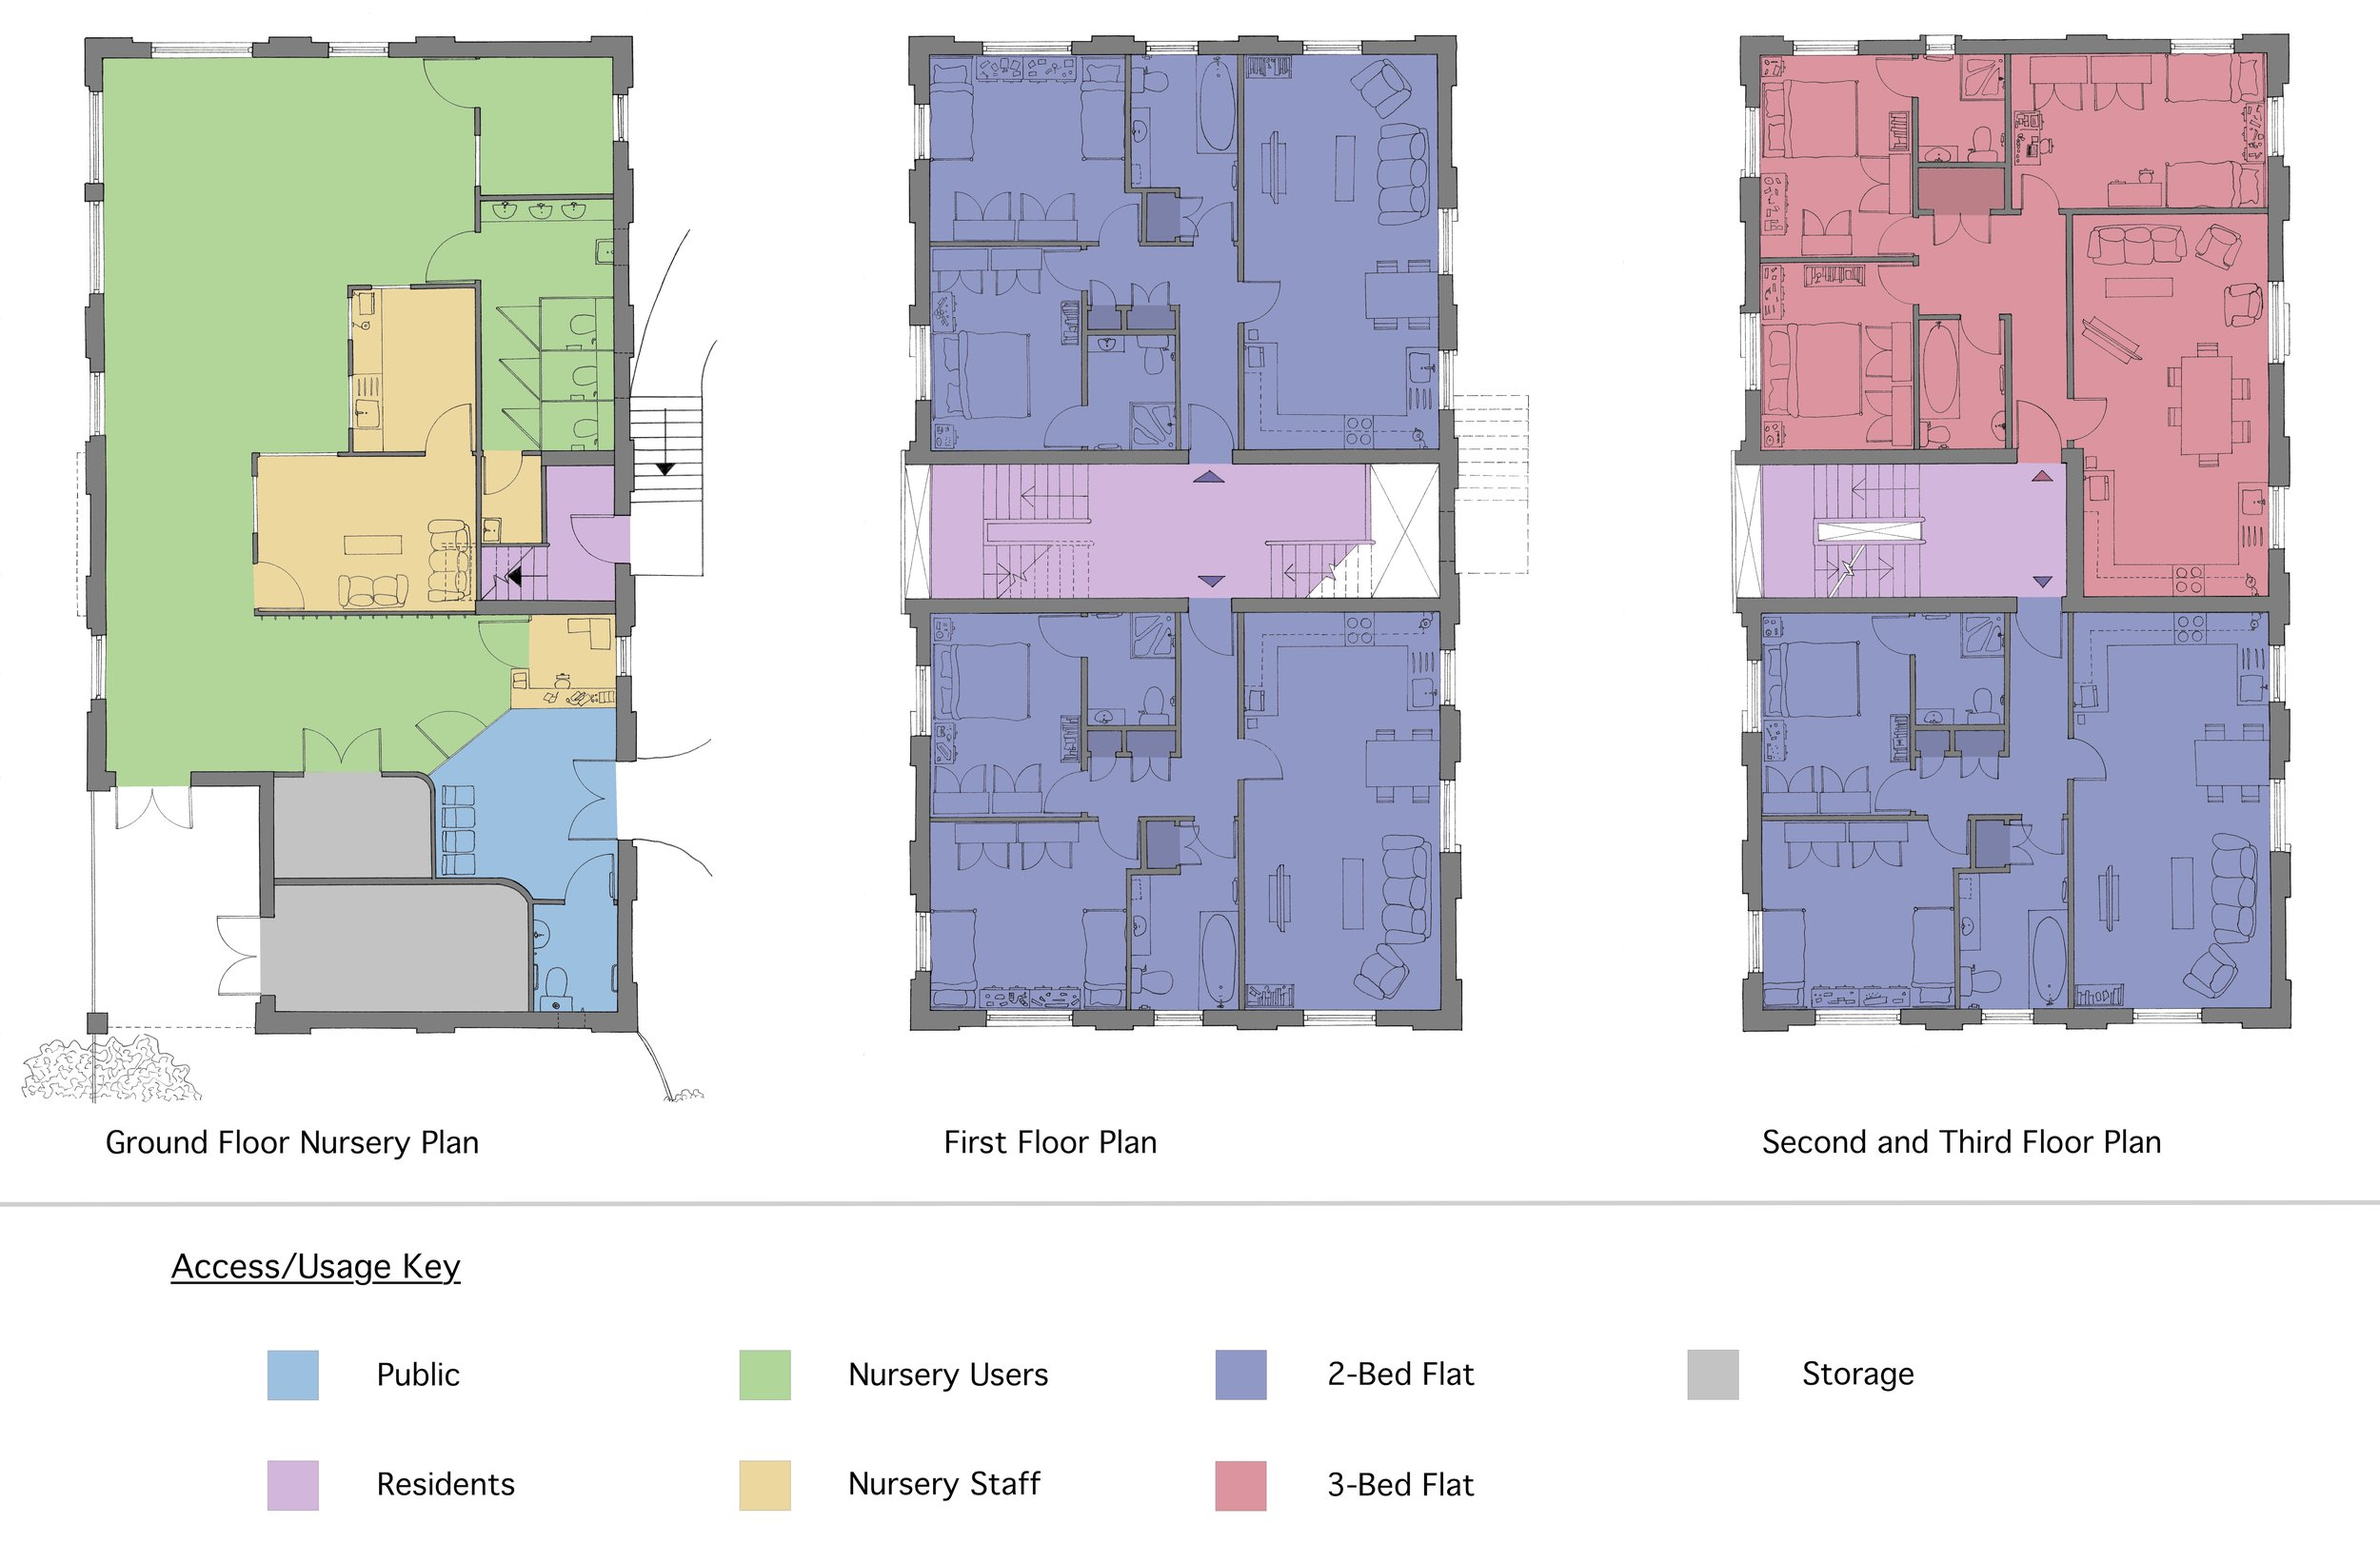 Access and Usage of Each Floor.